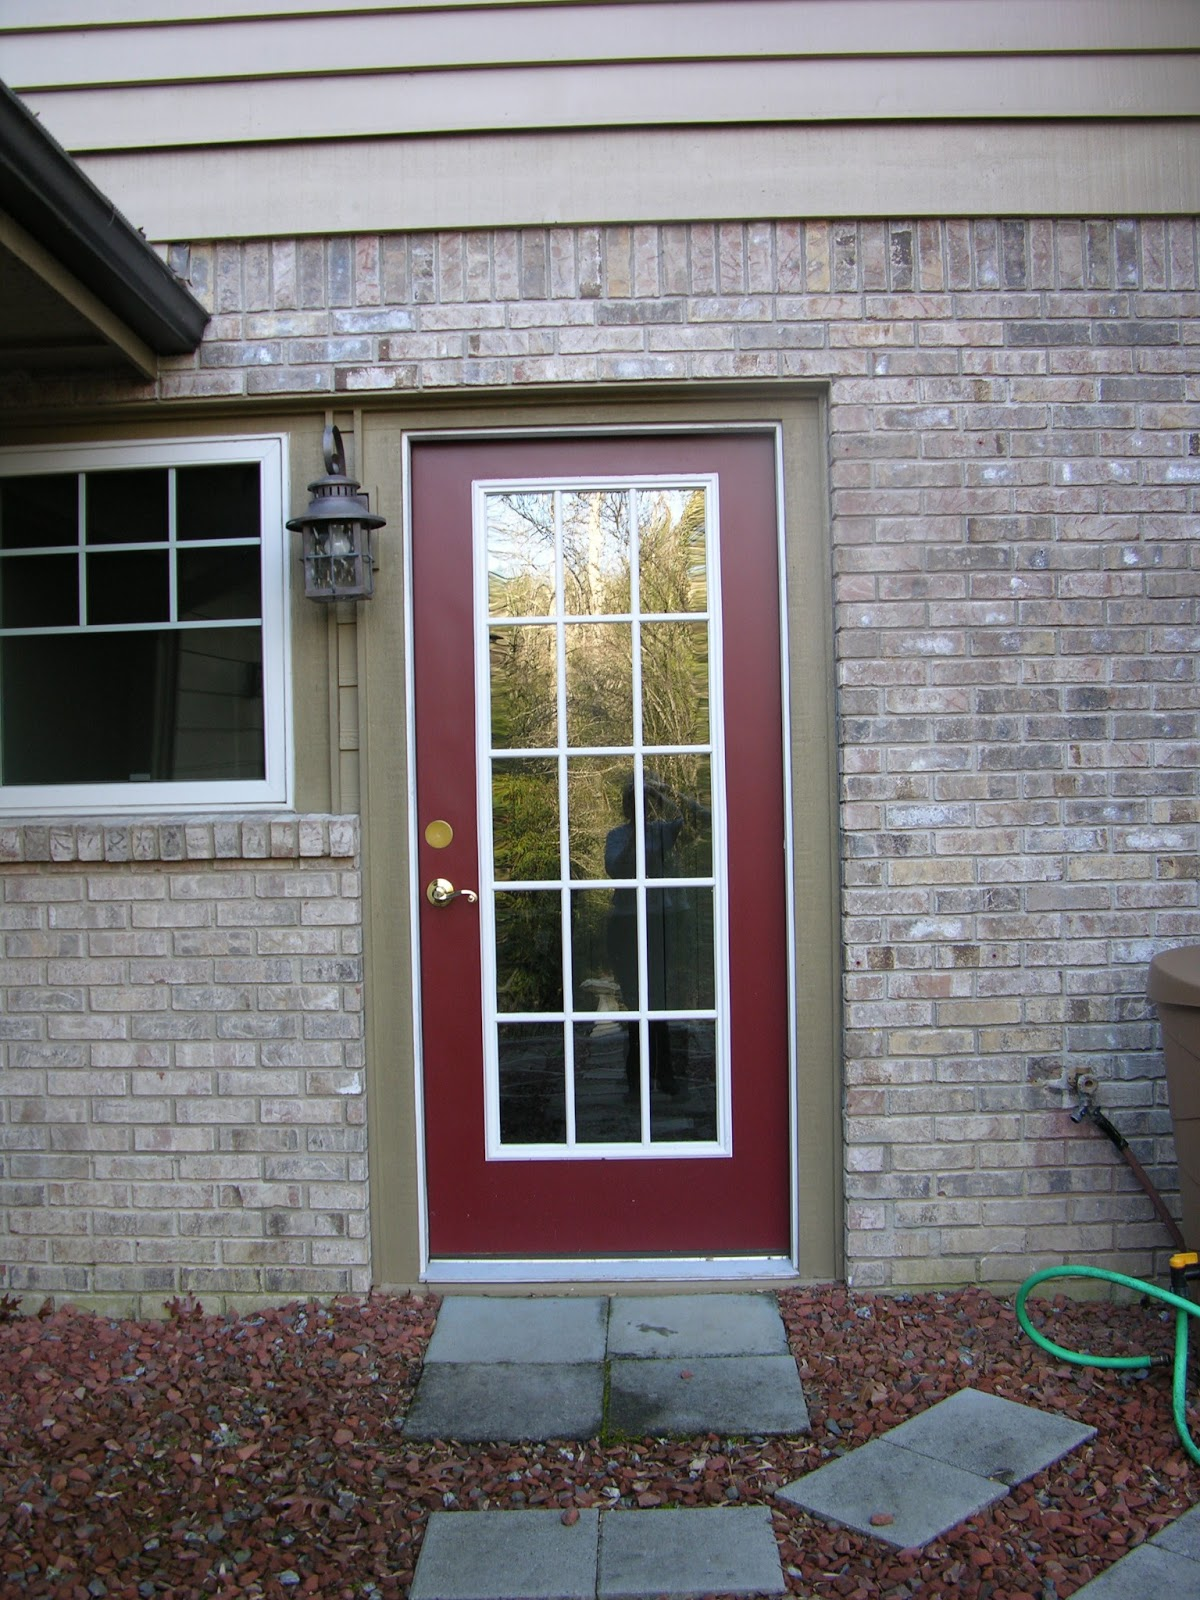 Paint color issues with vinyl doors and windows